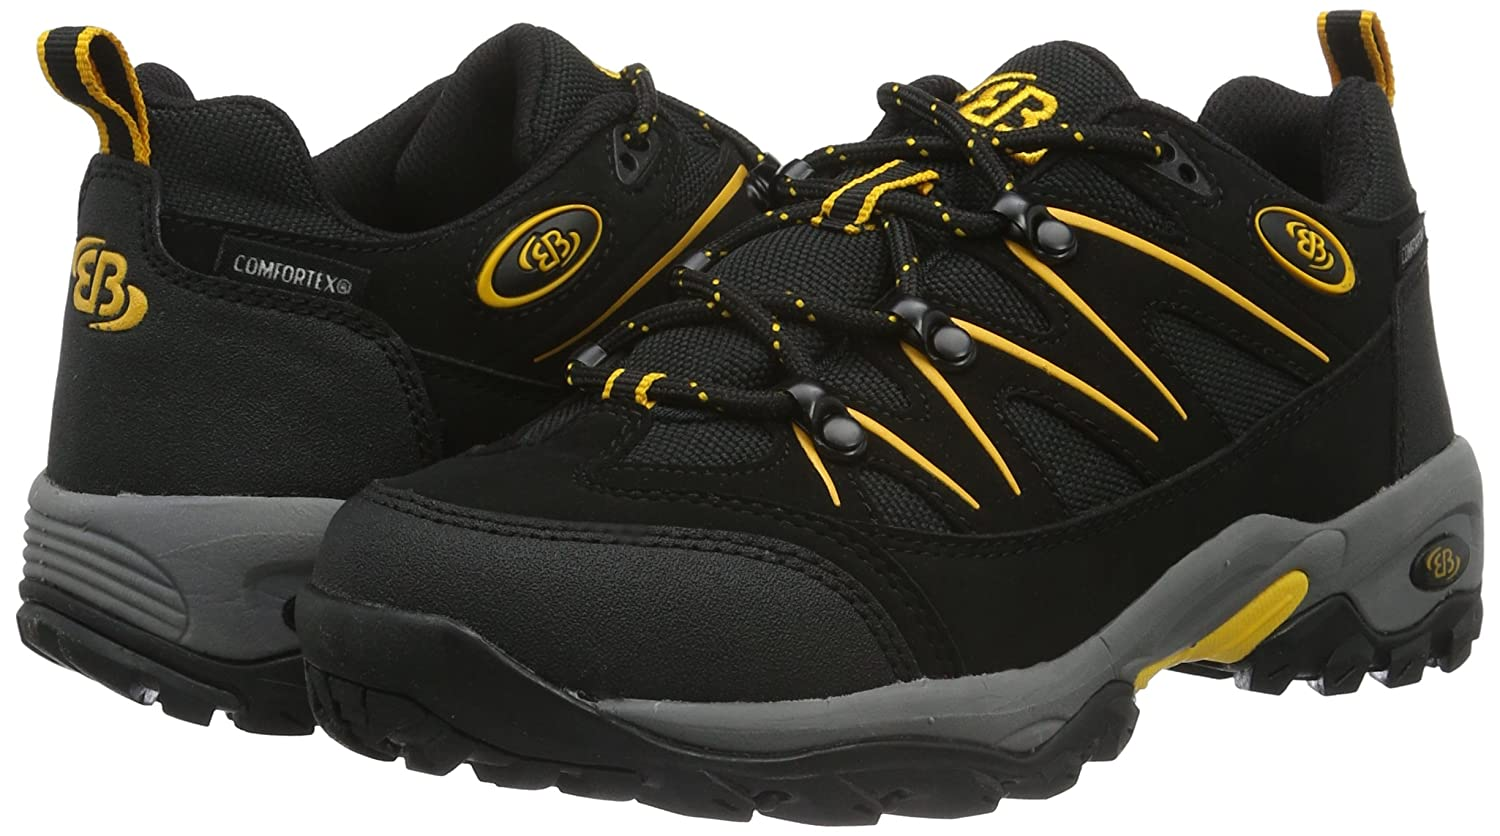 Bruetting Mount Hunter Low Scarpe da Arrampicata Arrampicata Arrampicata Unisex – Adulto 8e97ed